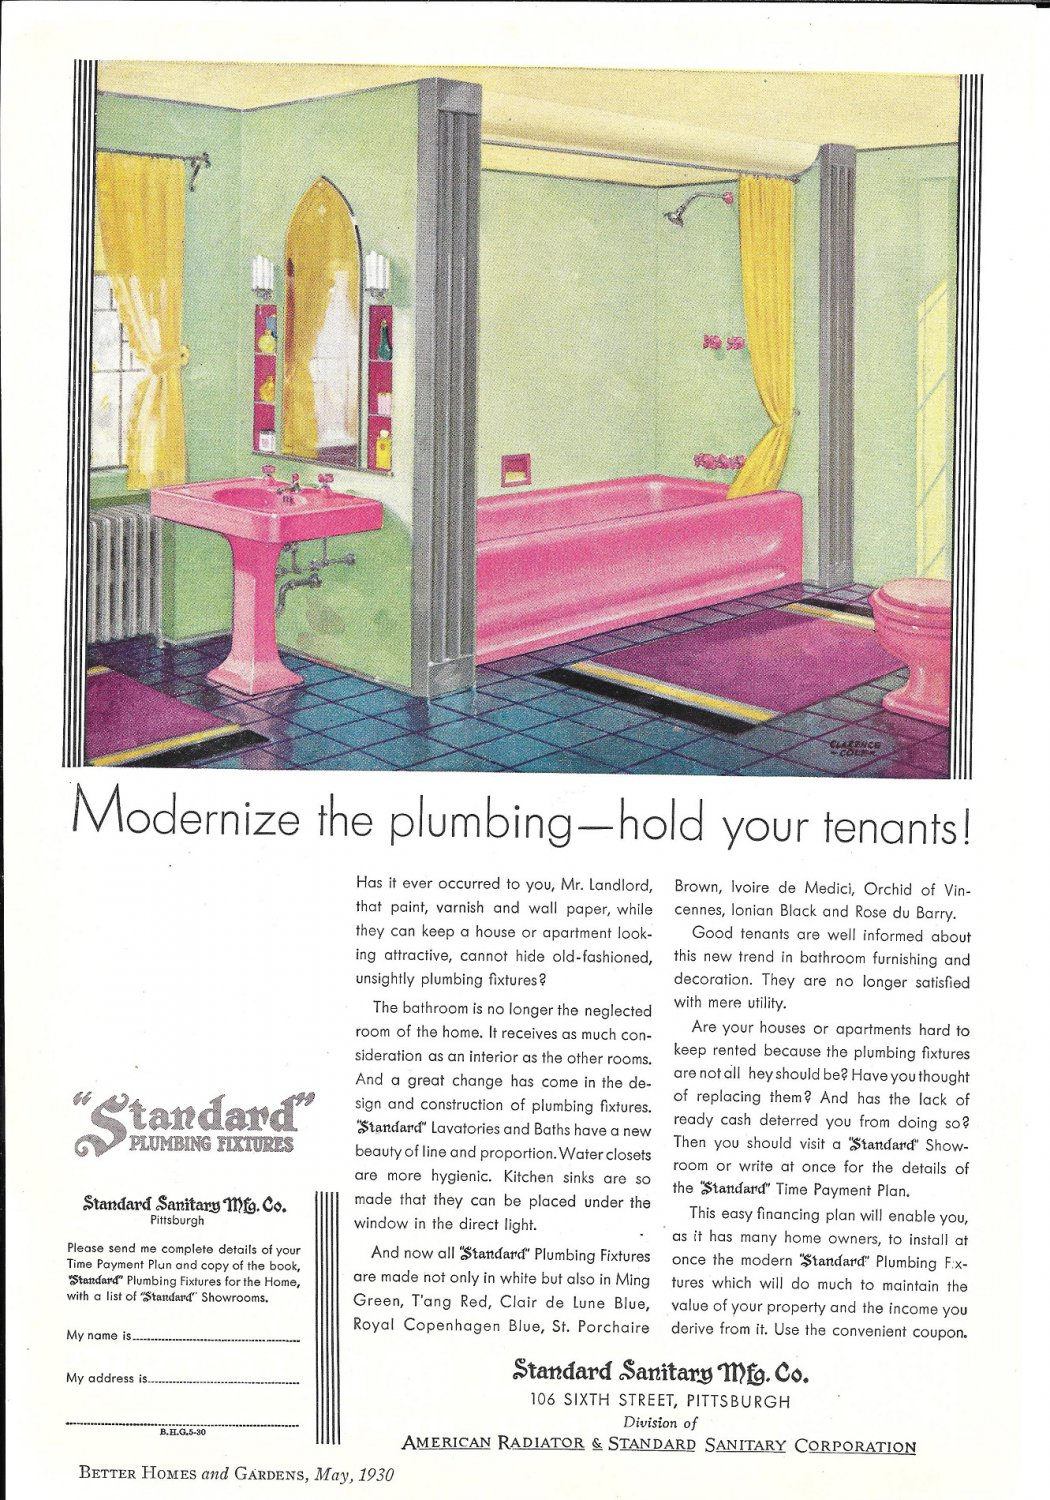 1930 Standard Plumbing Fixtures Modernize Hold Your Tenants Ad